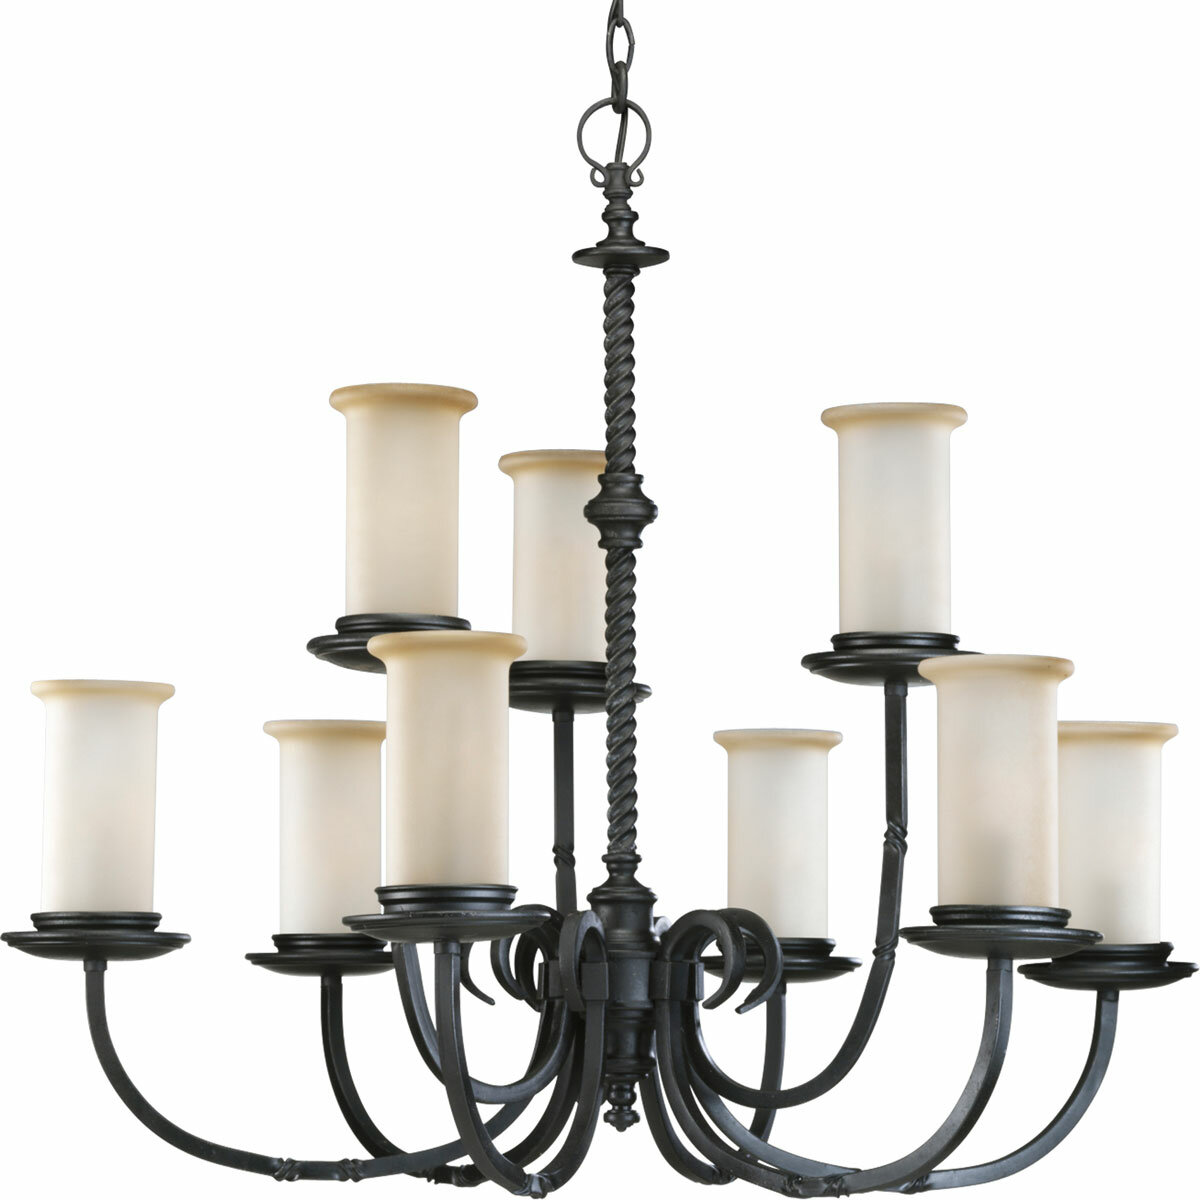 Astoria Grand Jakes 9 Light Shaded Classic Traditional Chandelier Reviews Wayfair